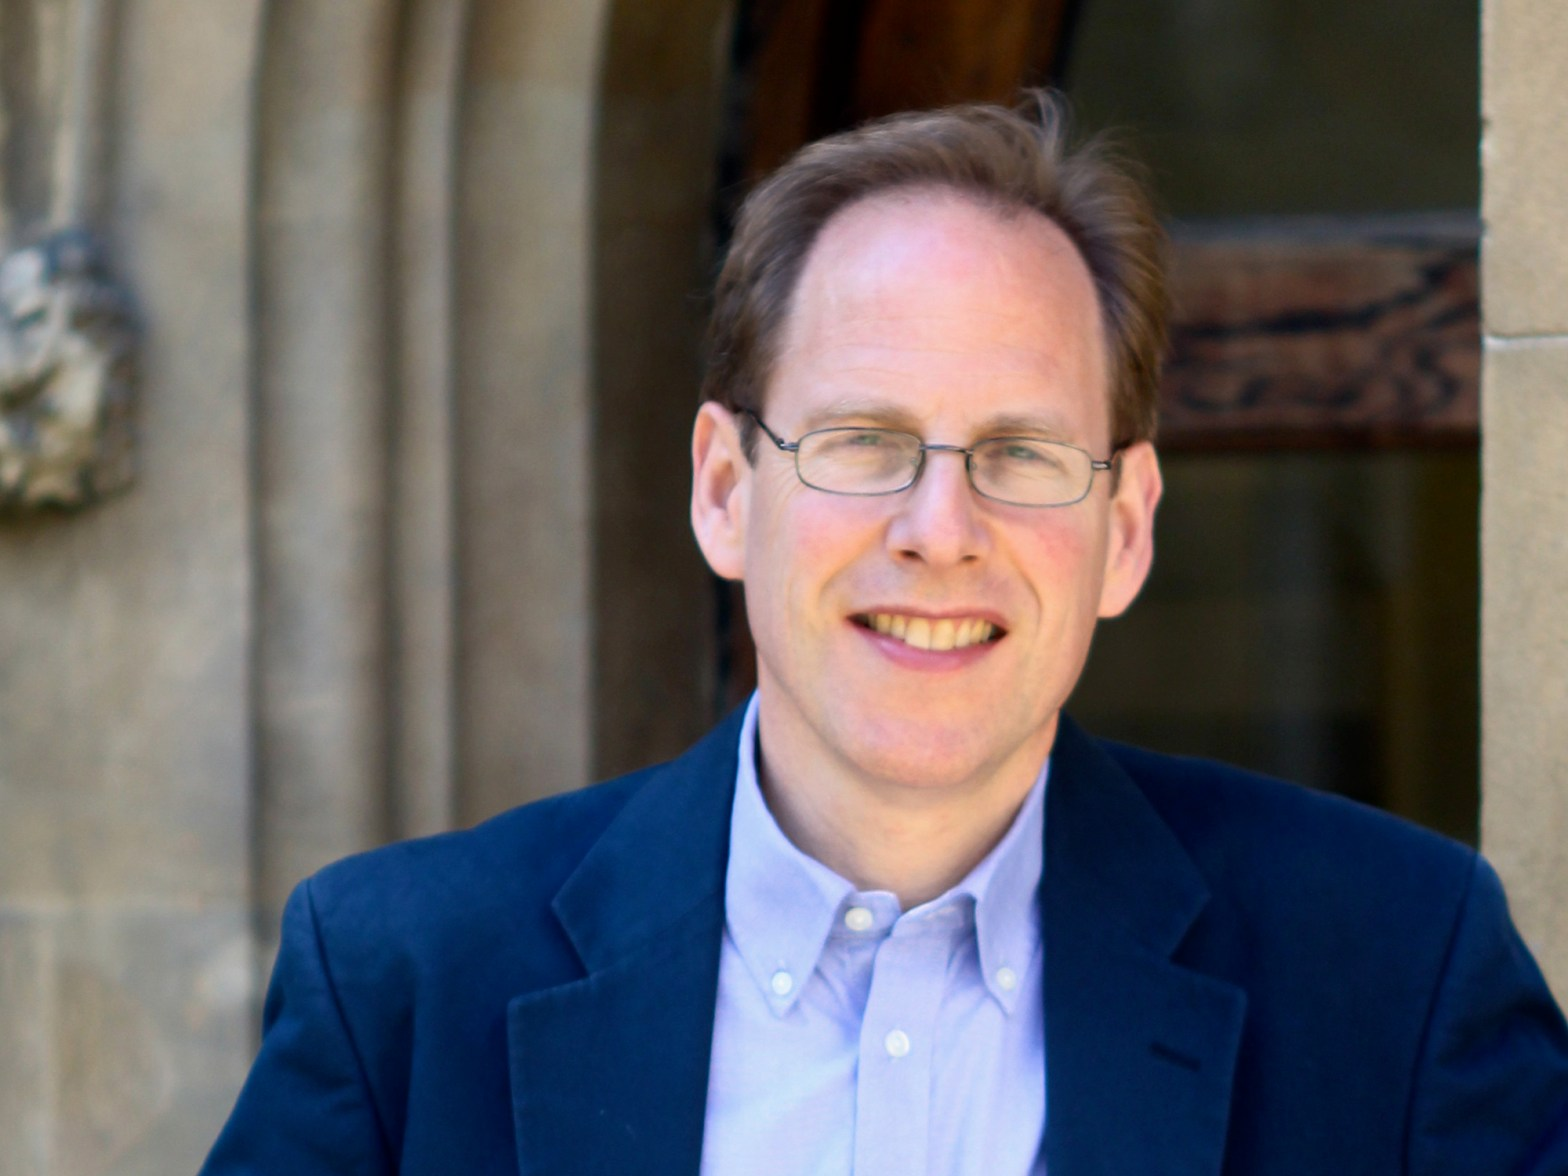 Sir Simon Baron-Cohen, FBA FBPsS FMedSci, Professor of Developmental Psychopathology at Cambridge, Director of the Autism Research Centre, and Fellow of Trinity